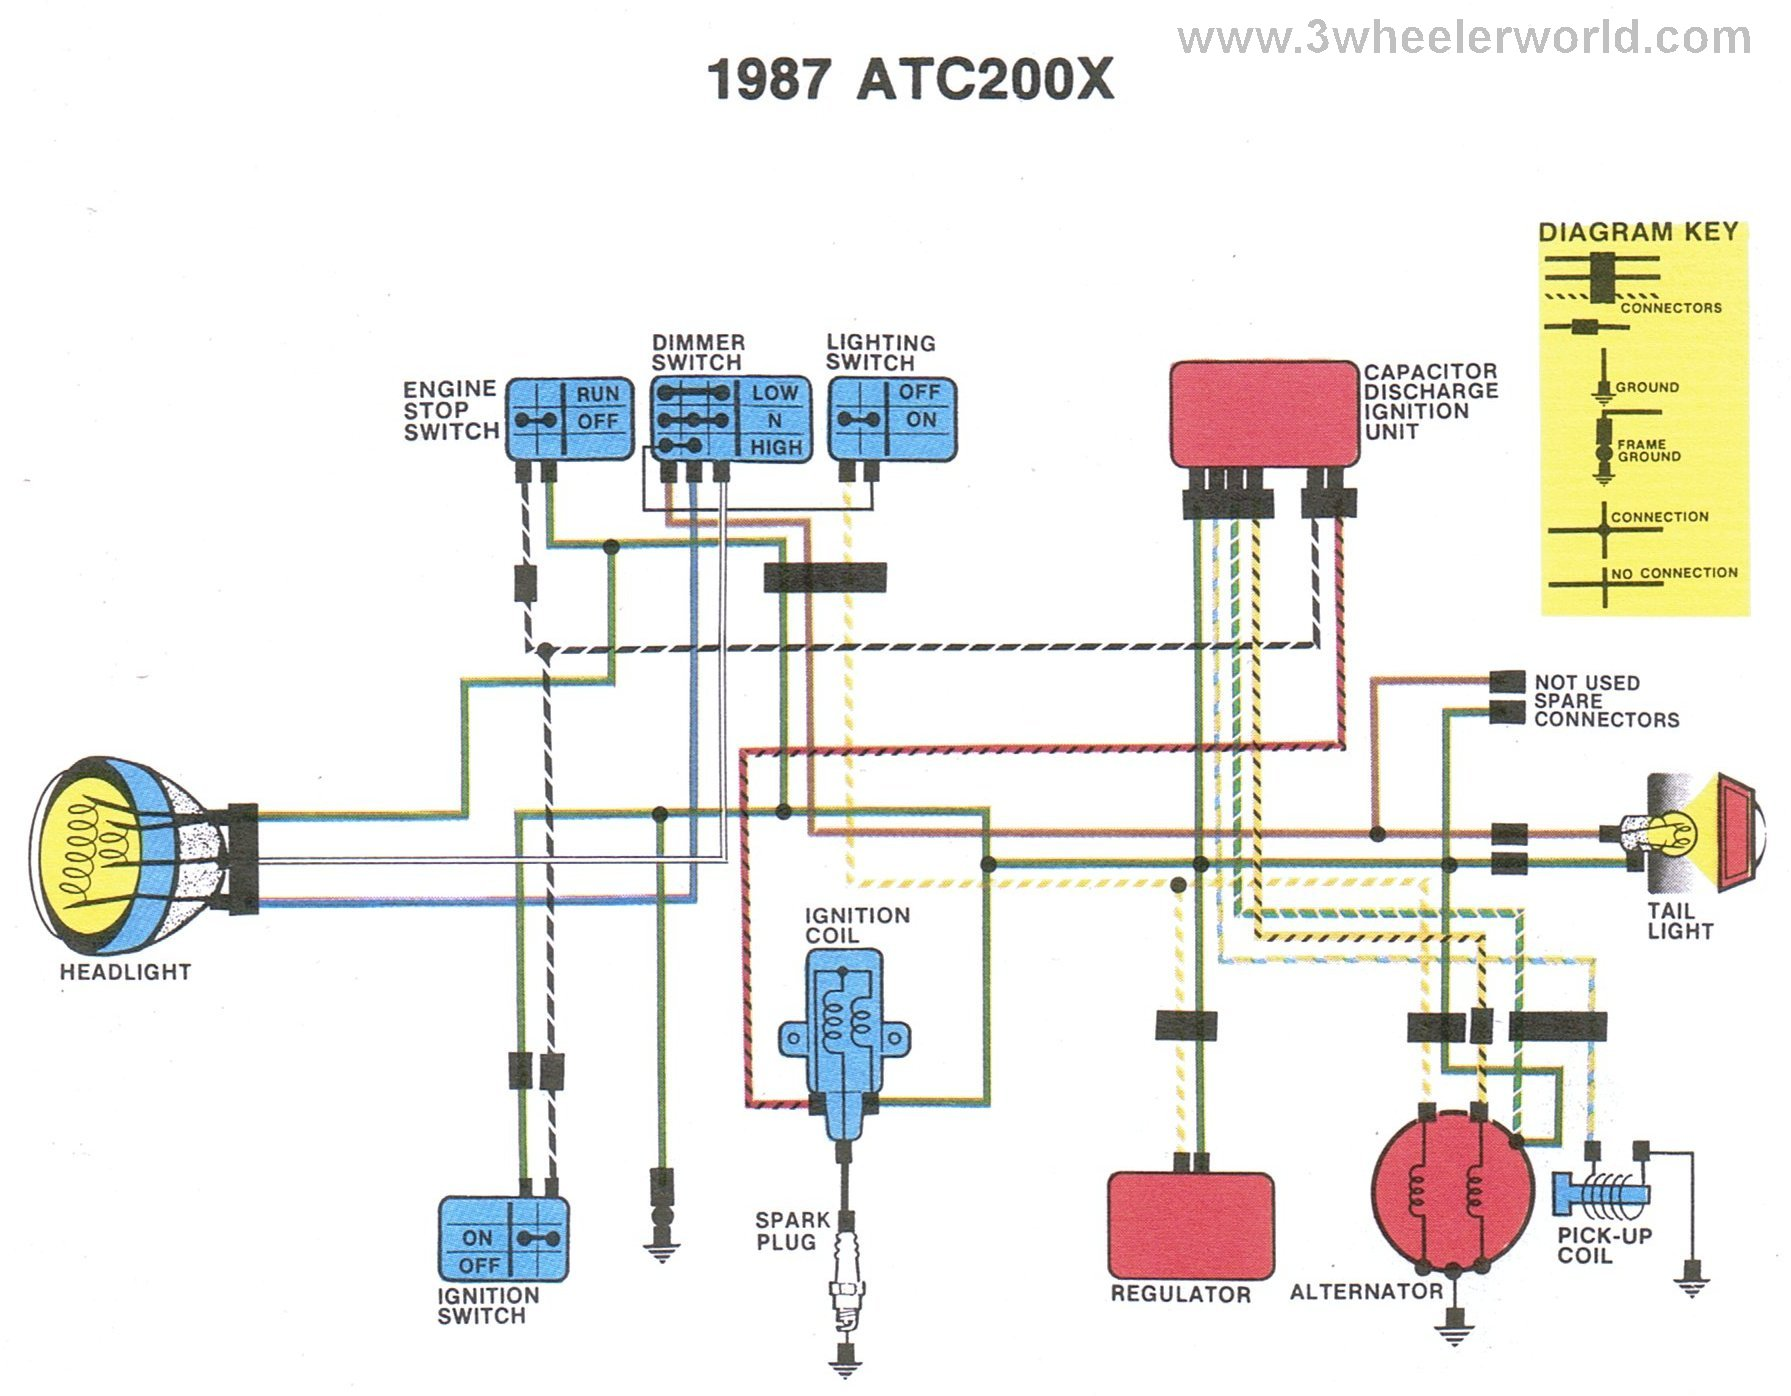 ATC200Xx87 3 wheeler world tech help honda wiring diagrams wiring diagram for honda atc 200 at bayanpartner.co